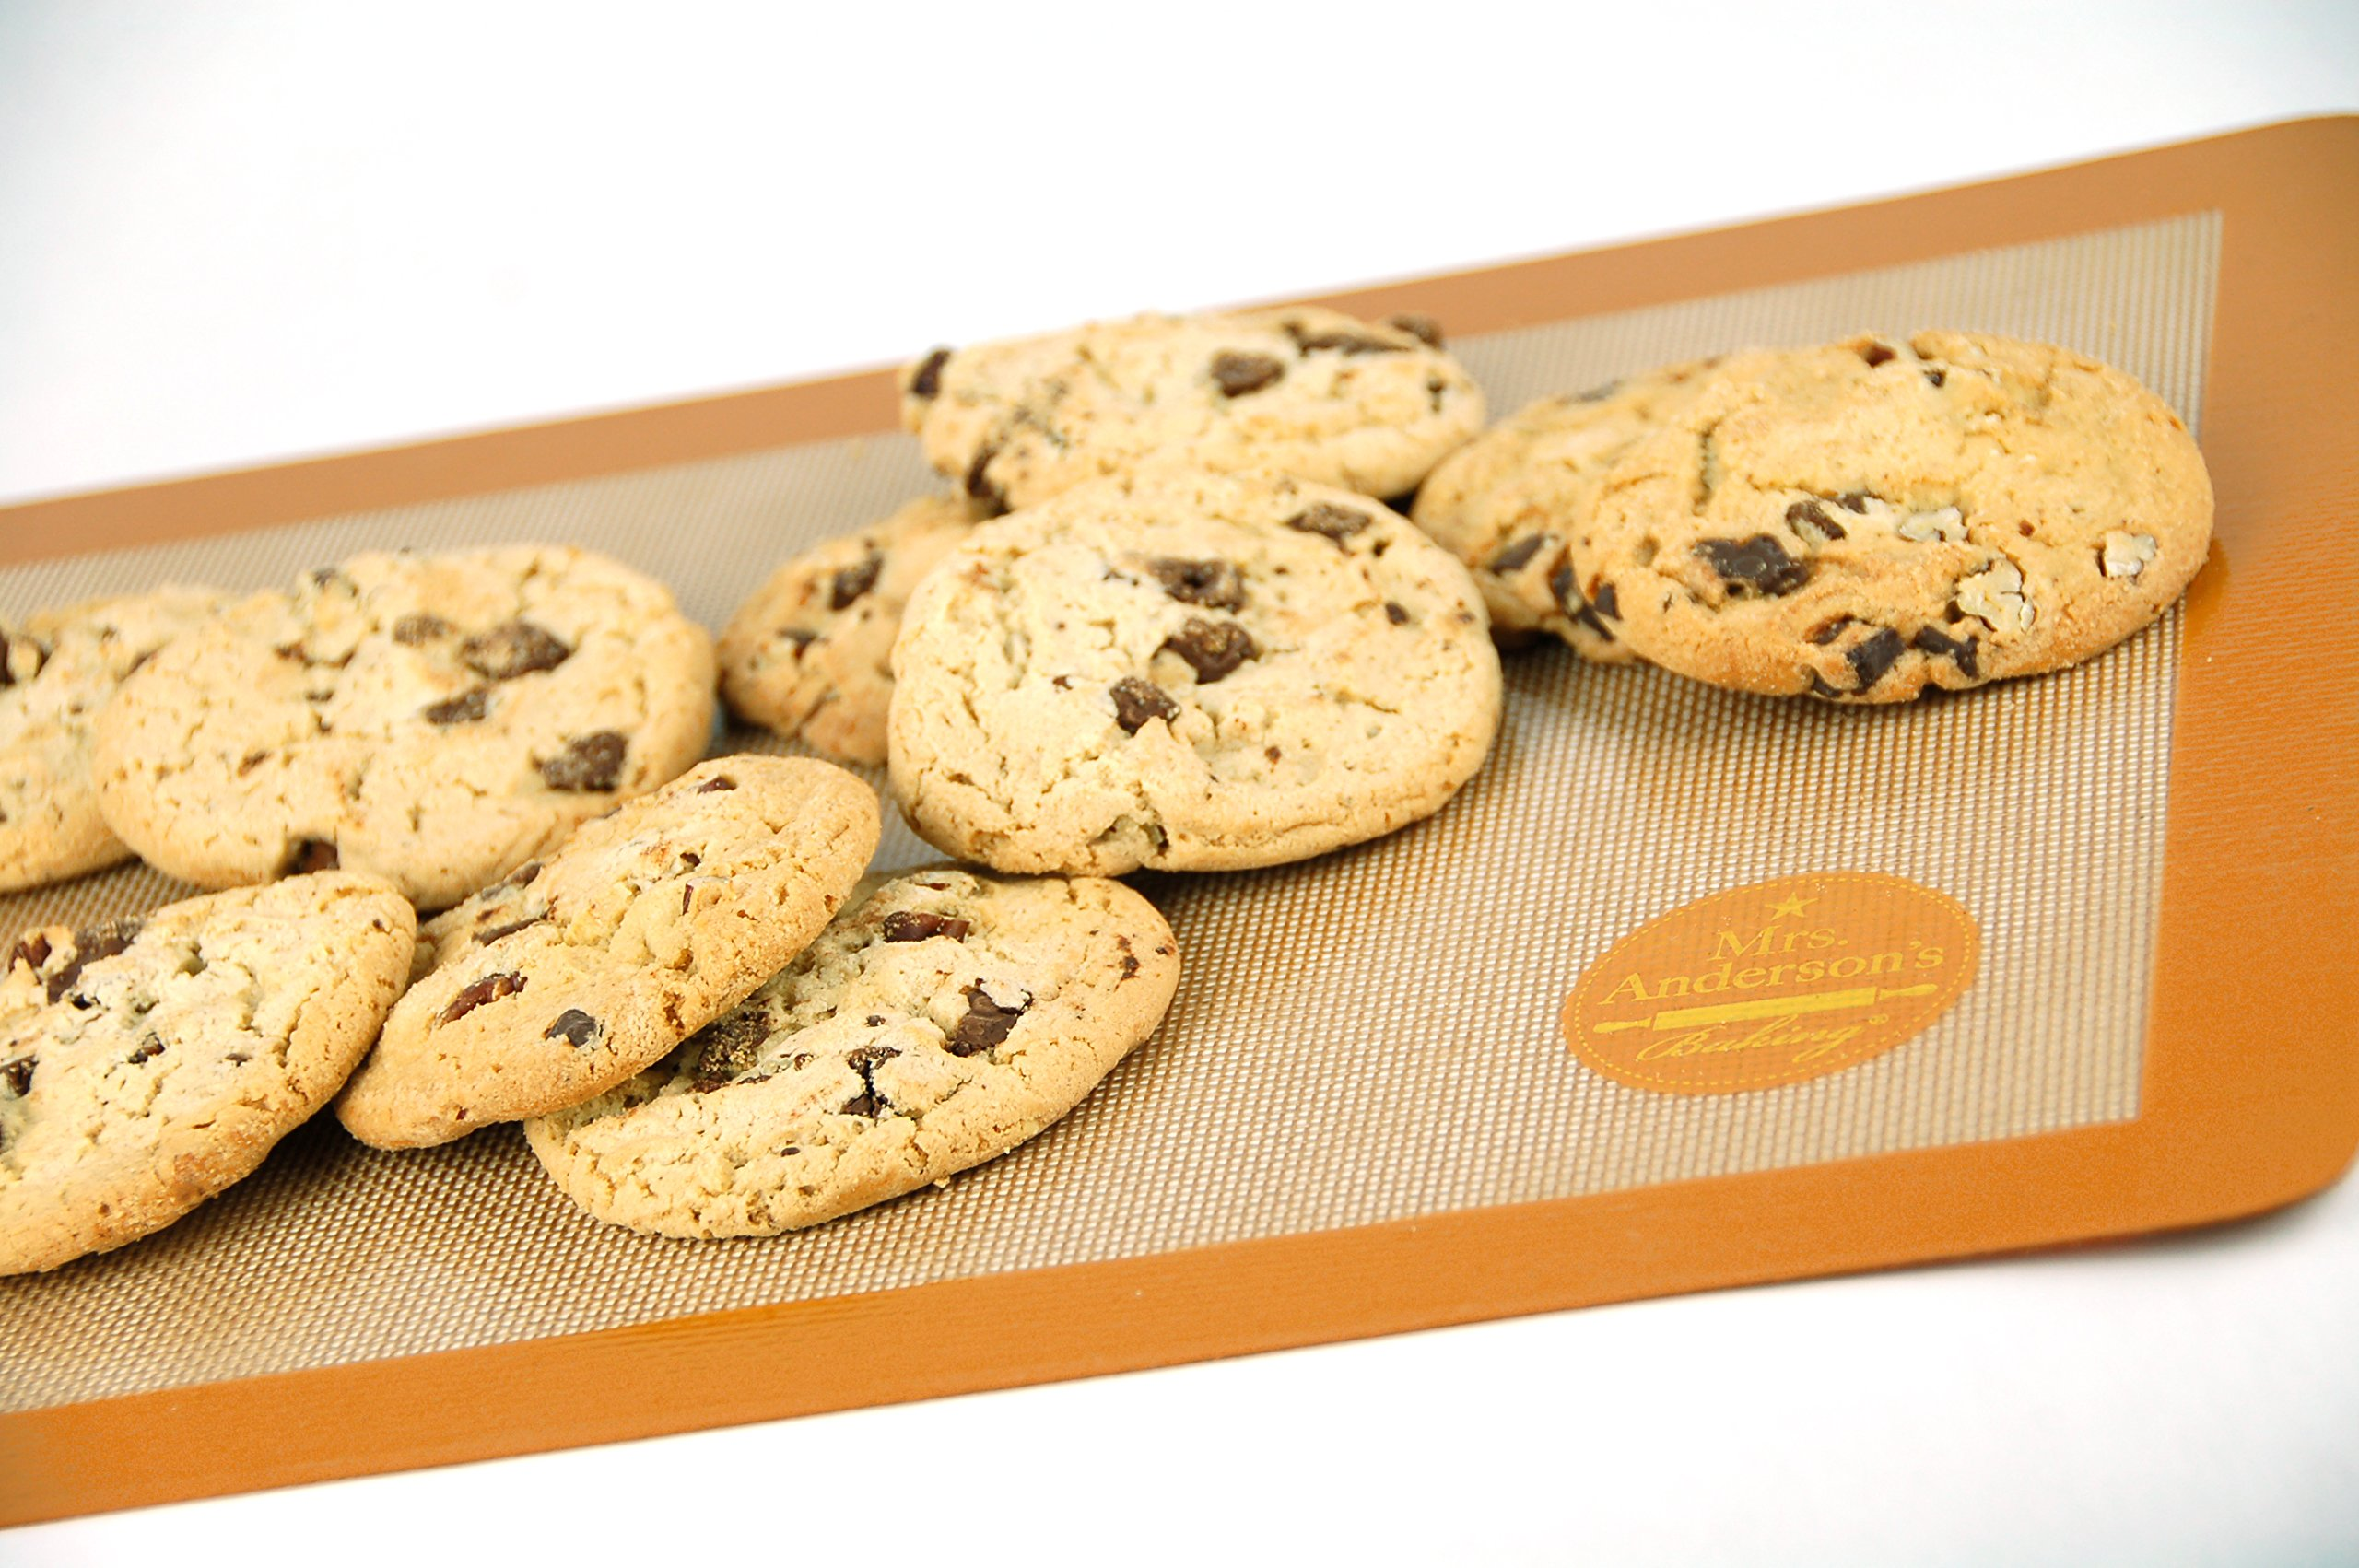 Mrs. Anderson's Baking Non-Stick Silicone Half-Size Baking Mat, 11.625-Inch x 16.5-Inch, Set of 2 by Mrs. Anderson's Baking (Image #3)